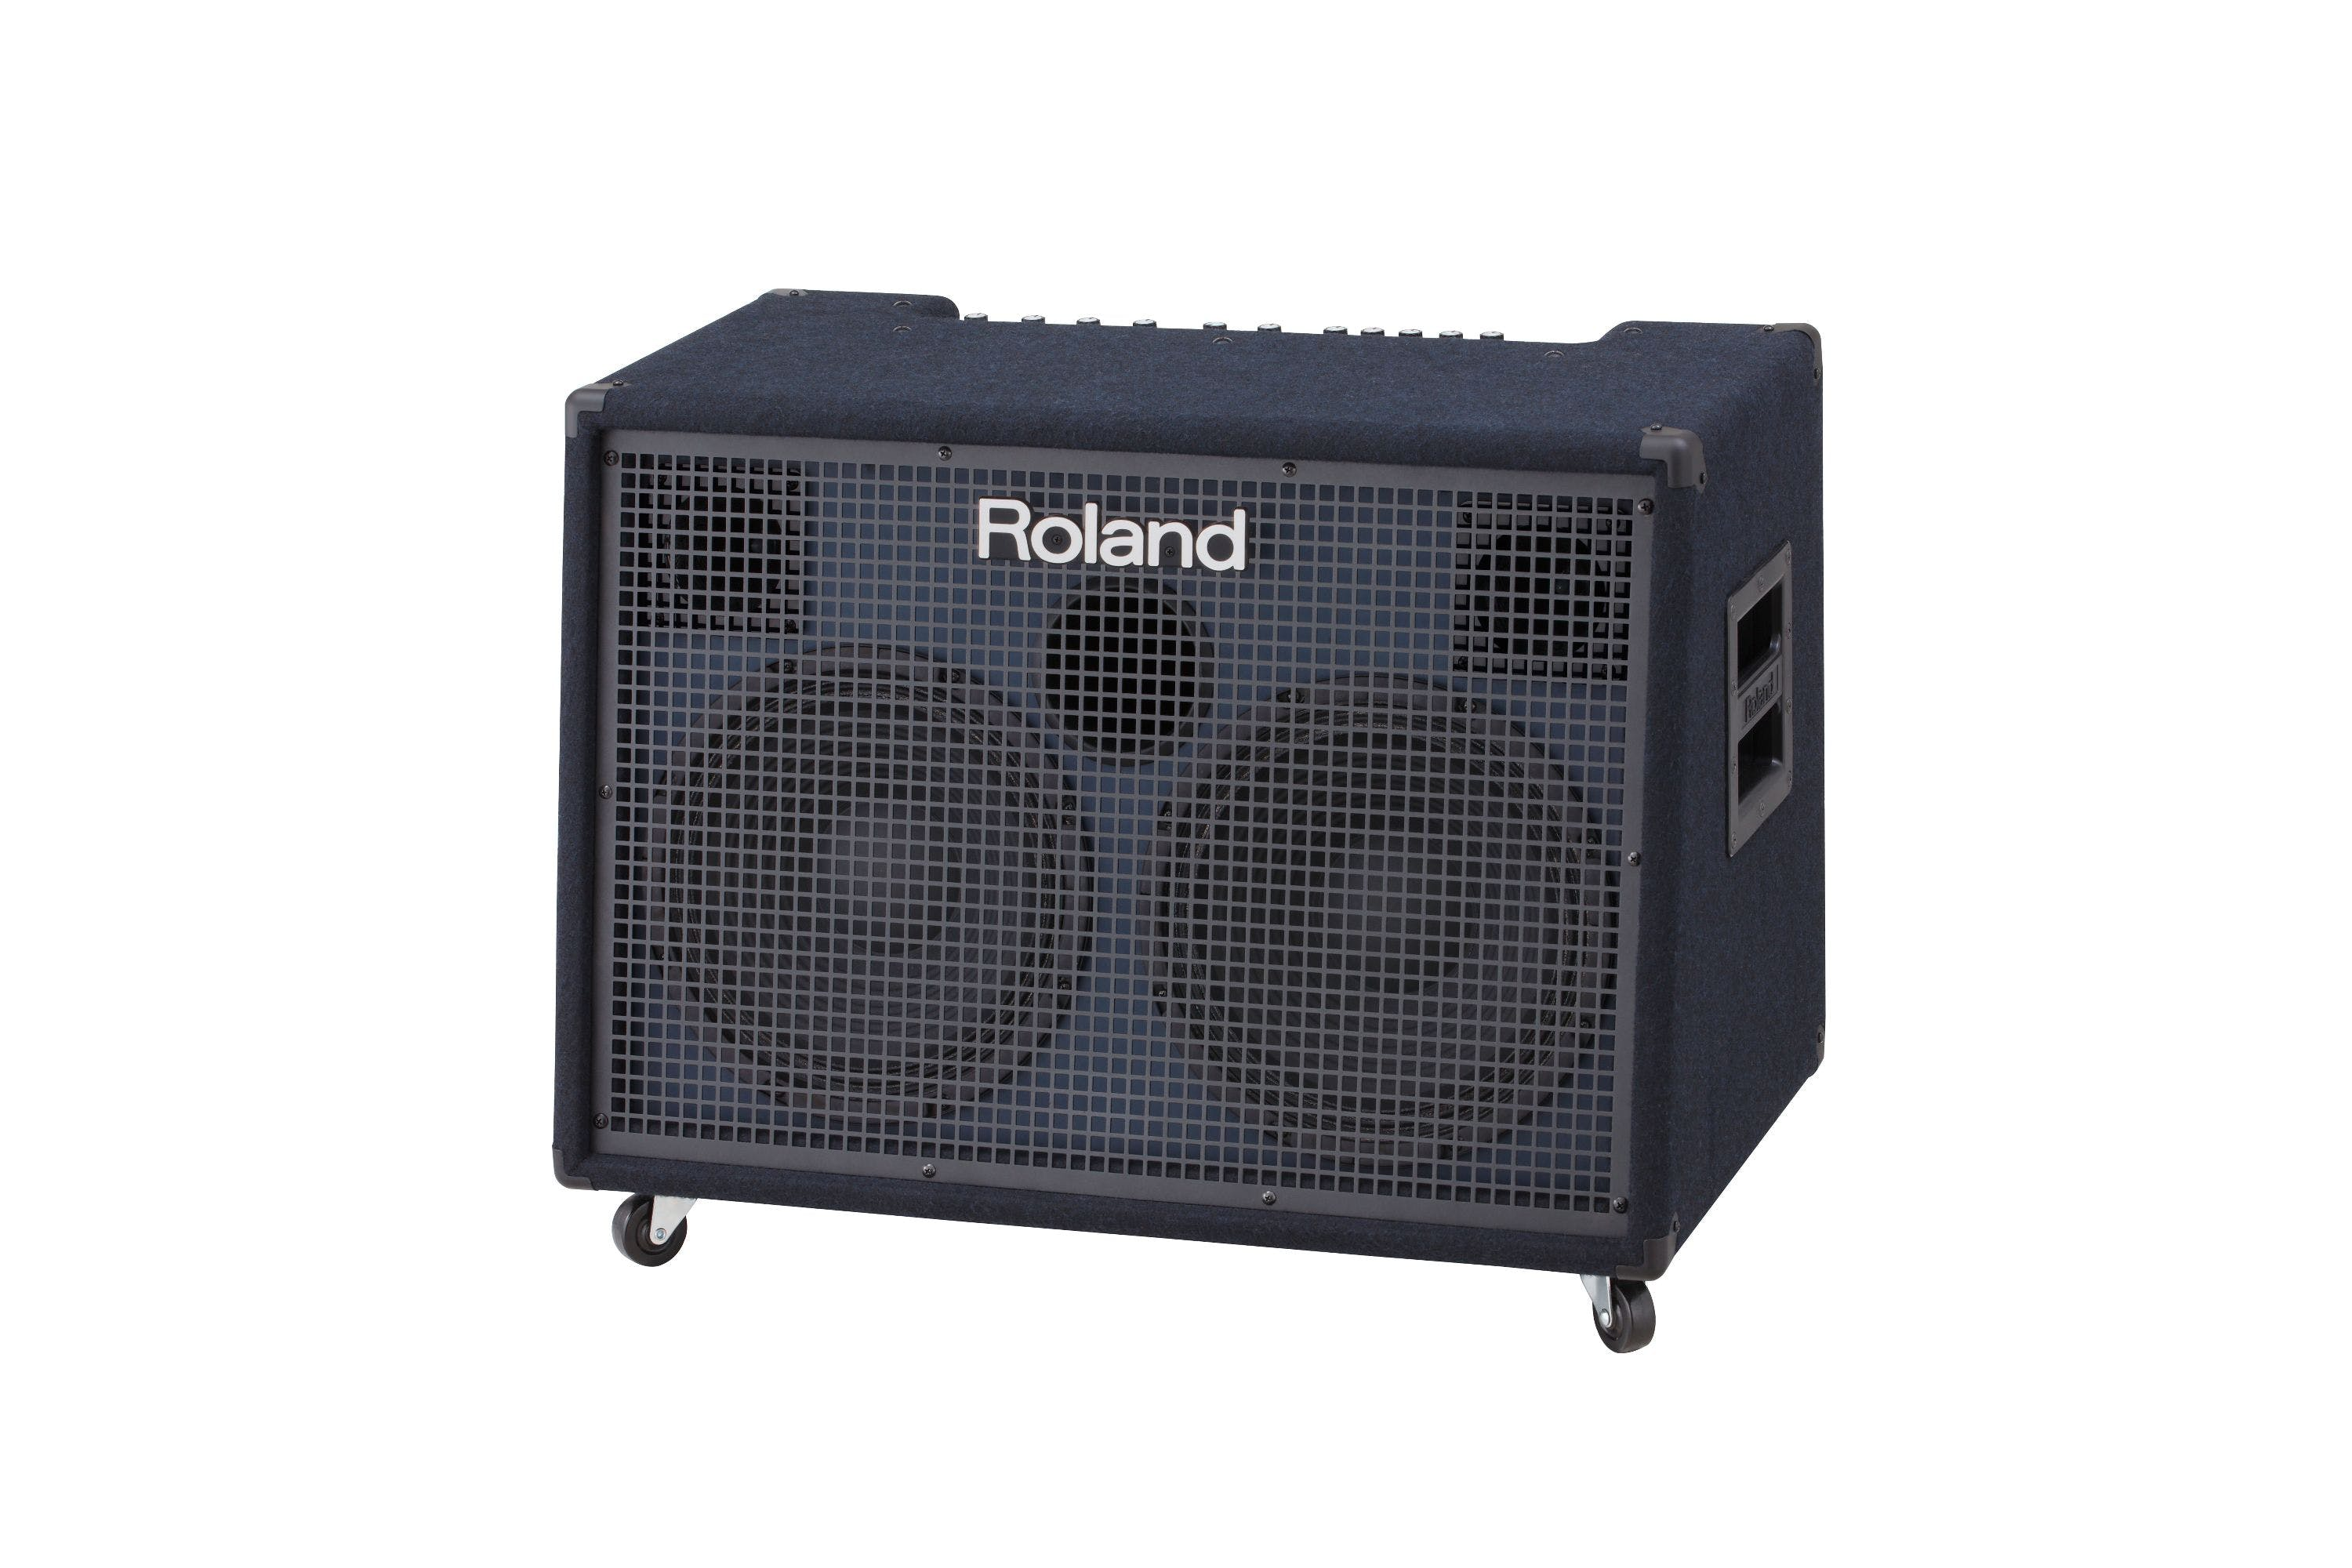 roland kc 990 stereo keyboard amplifier andertons music co rh andertons co uk Yamaha Keyboard Amplifiers keyboard amplifier buying guide